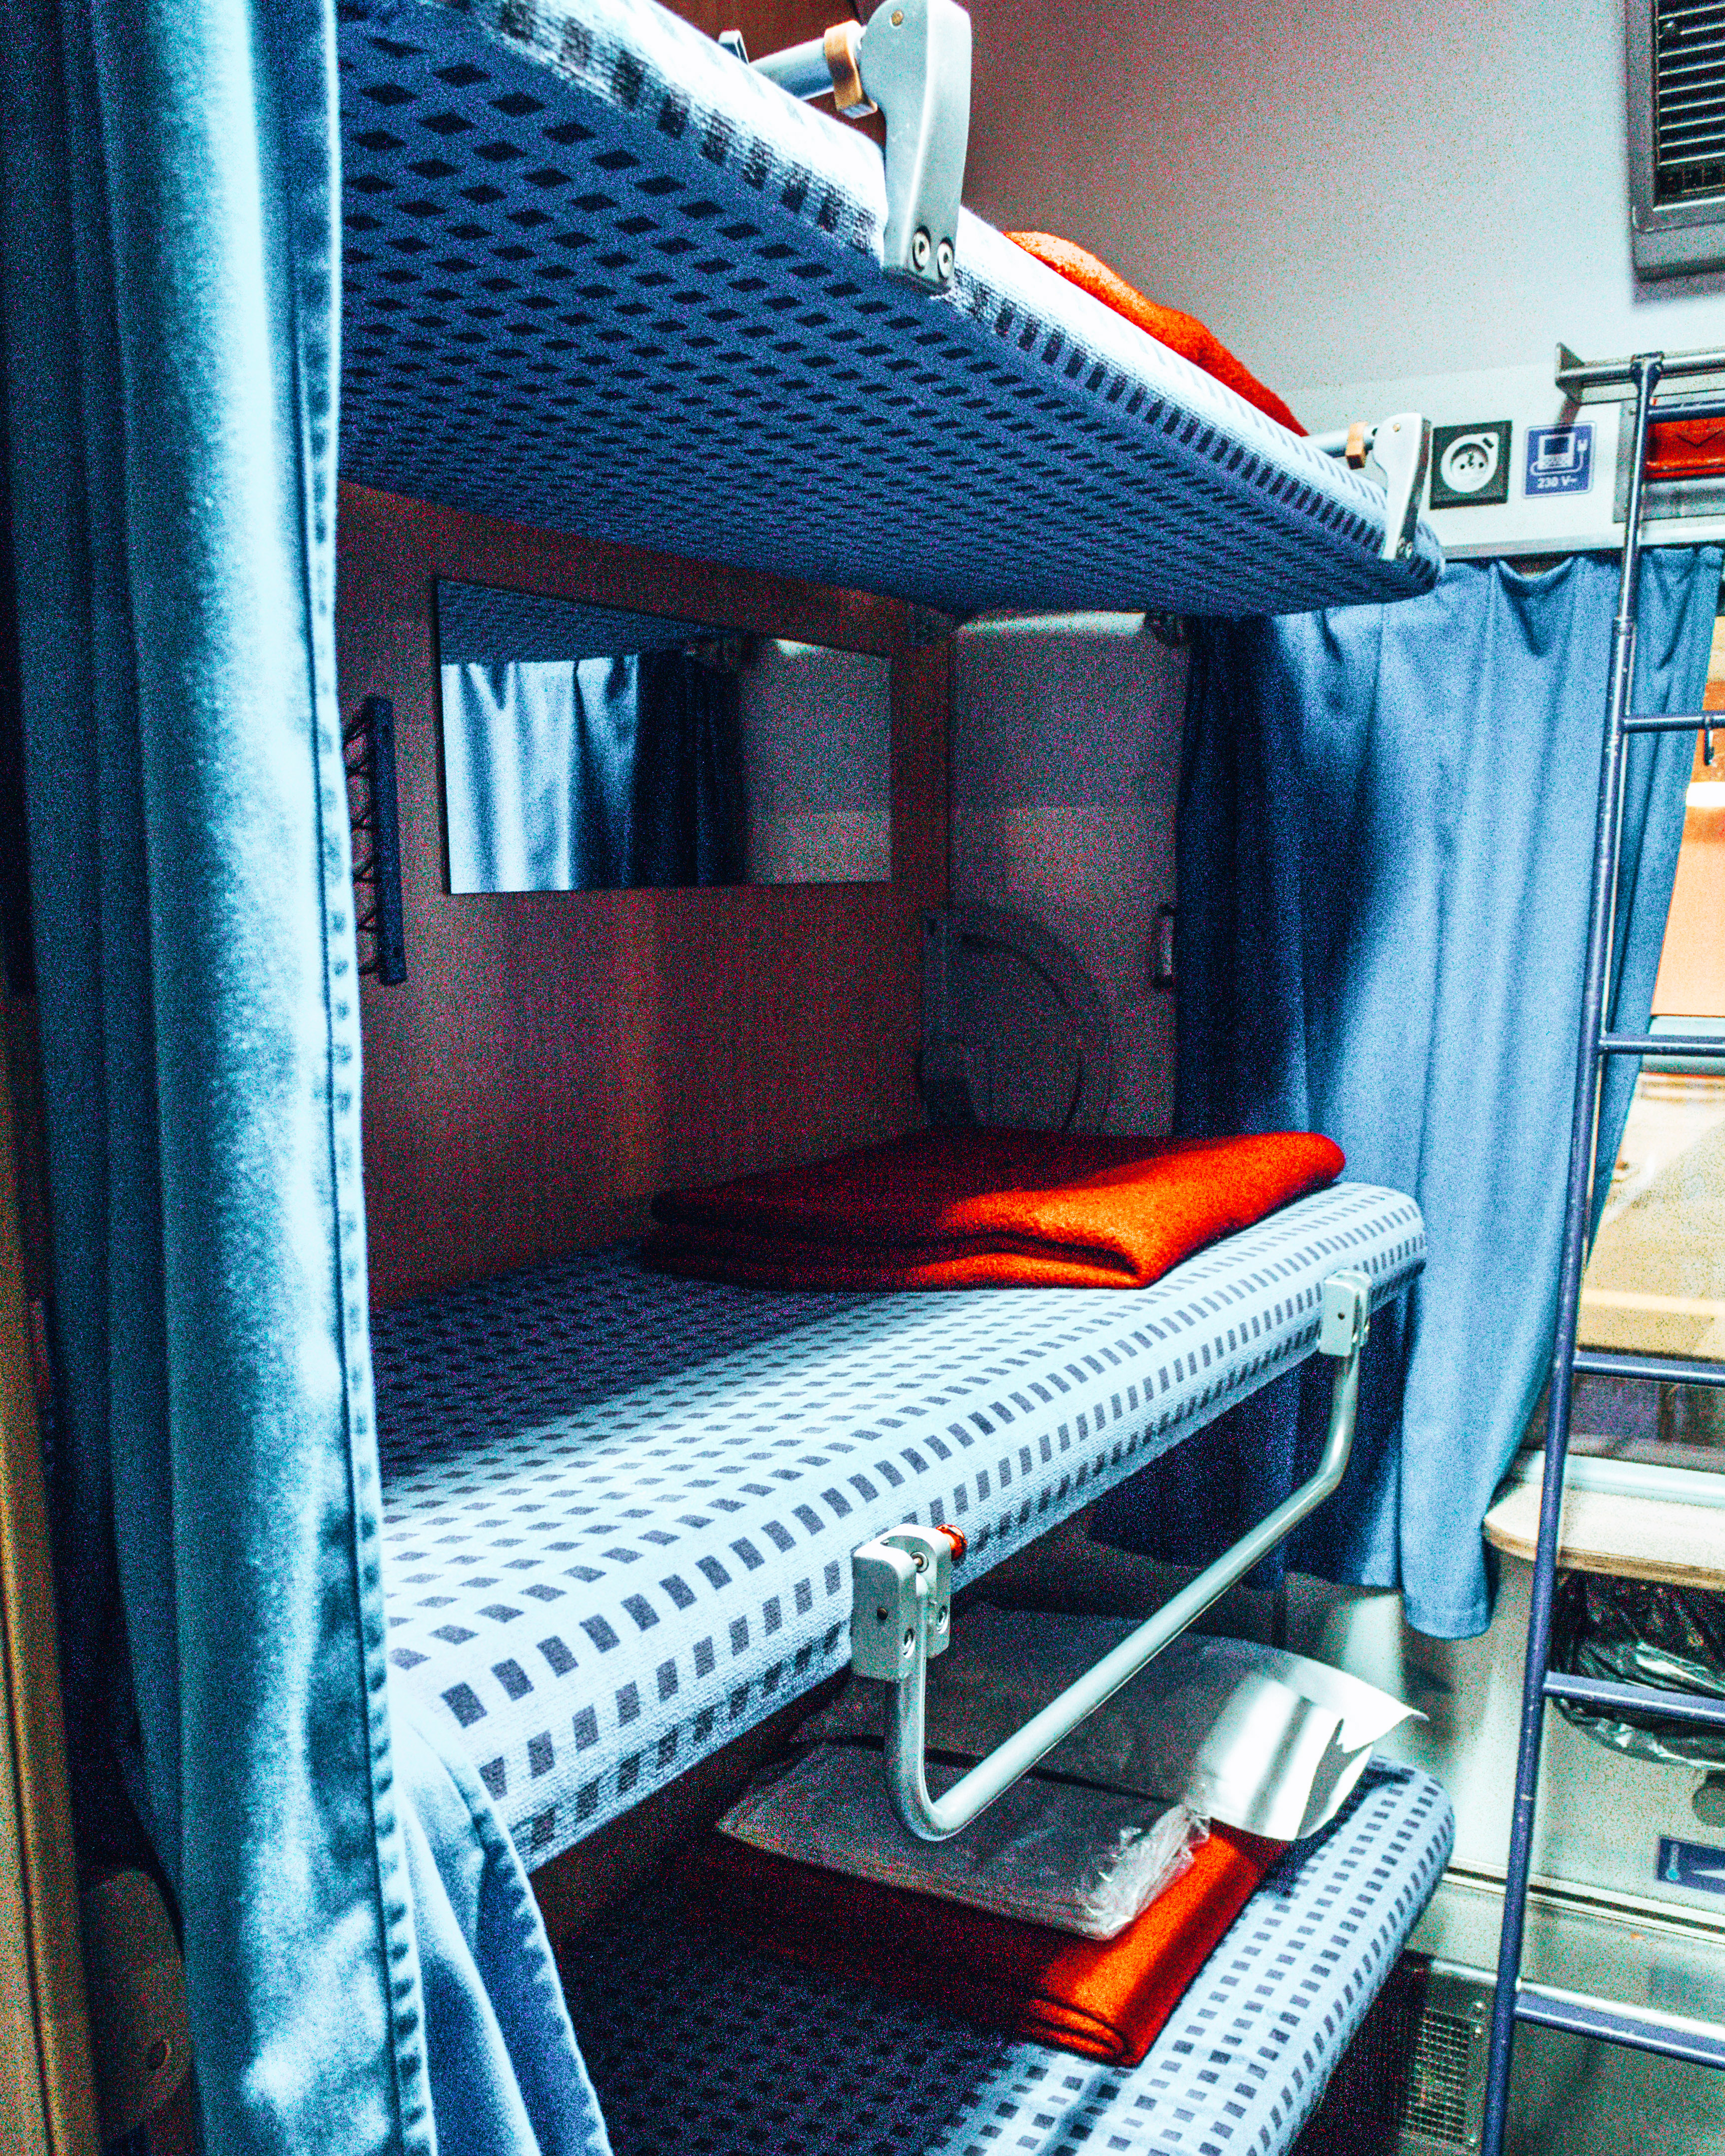 Our bed for the night on our way to Bratislava